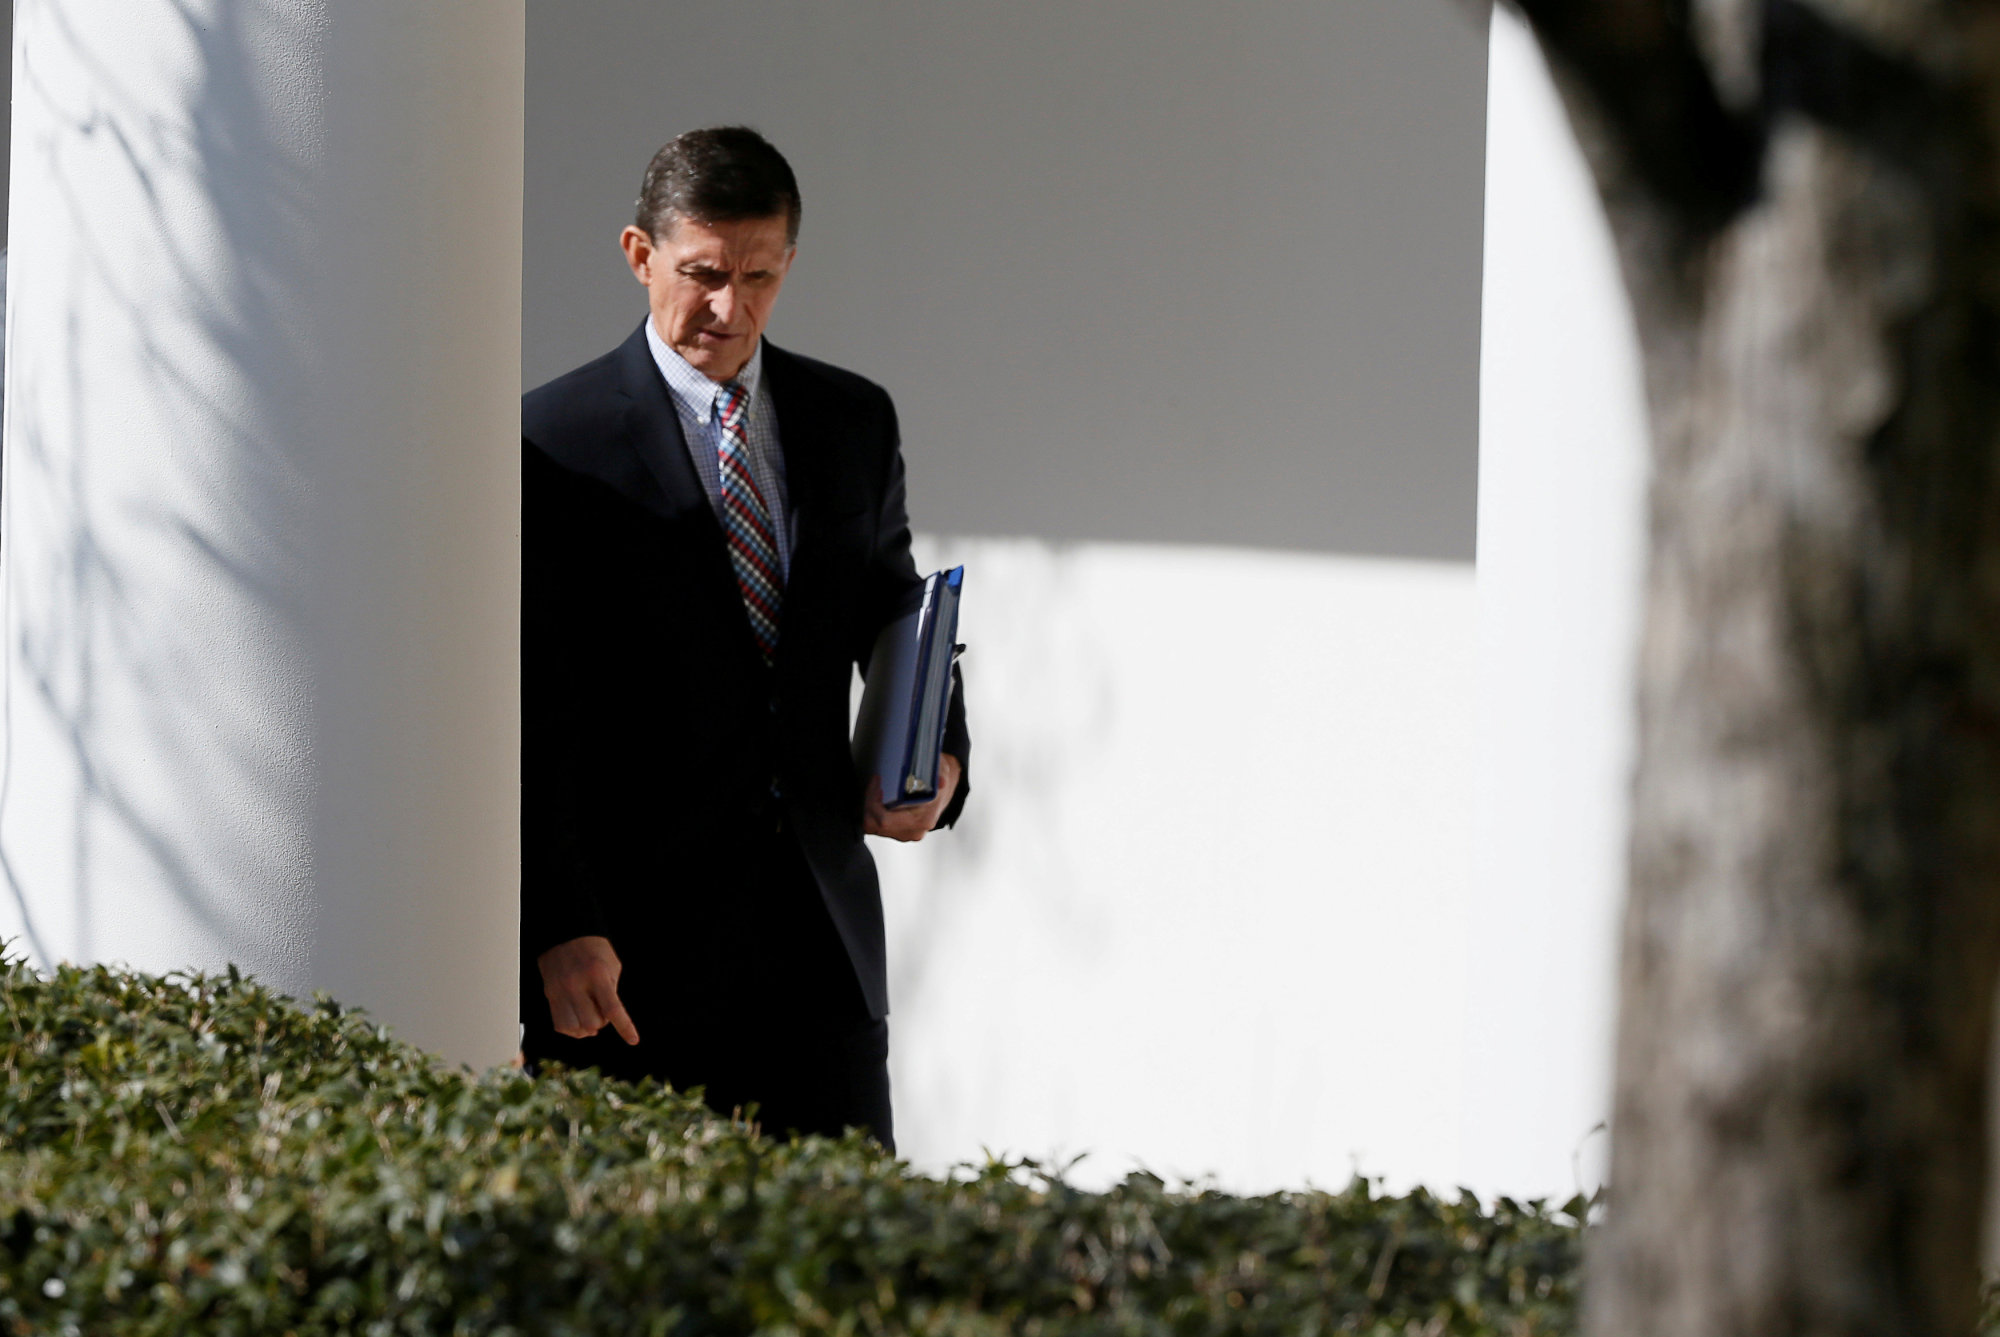 White House National Security Advisor Michael Flynn walks down the White House colonnade on the way to the joint news conference of President Donald Trump and Prime Minister Shinzo Abe on Feb. 10. | REUTERS